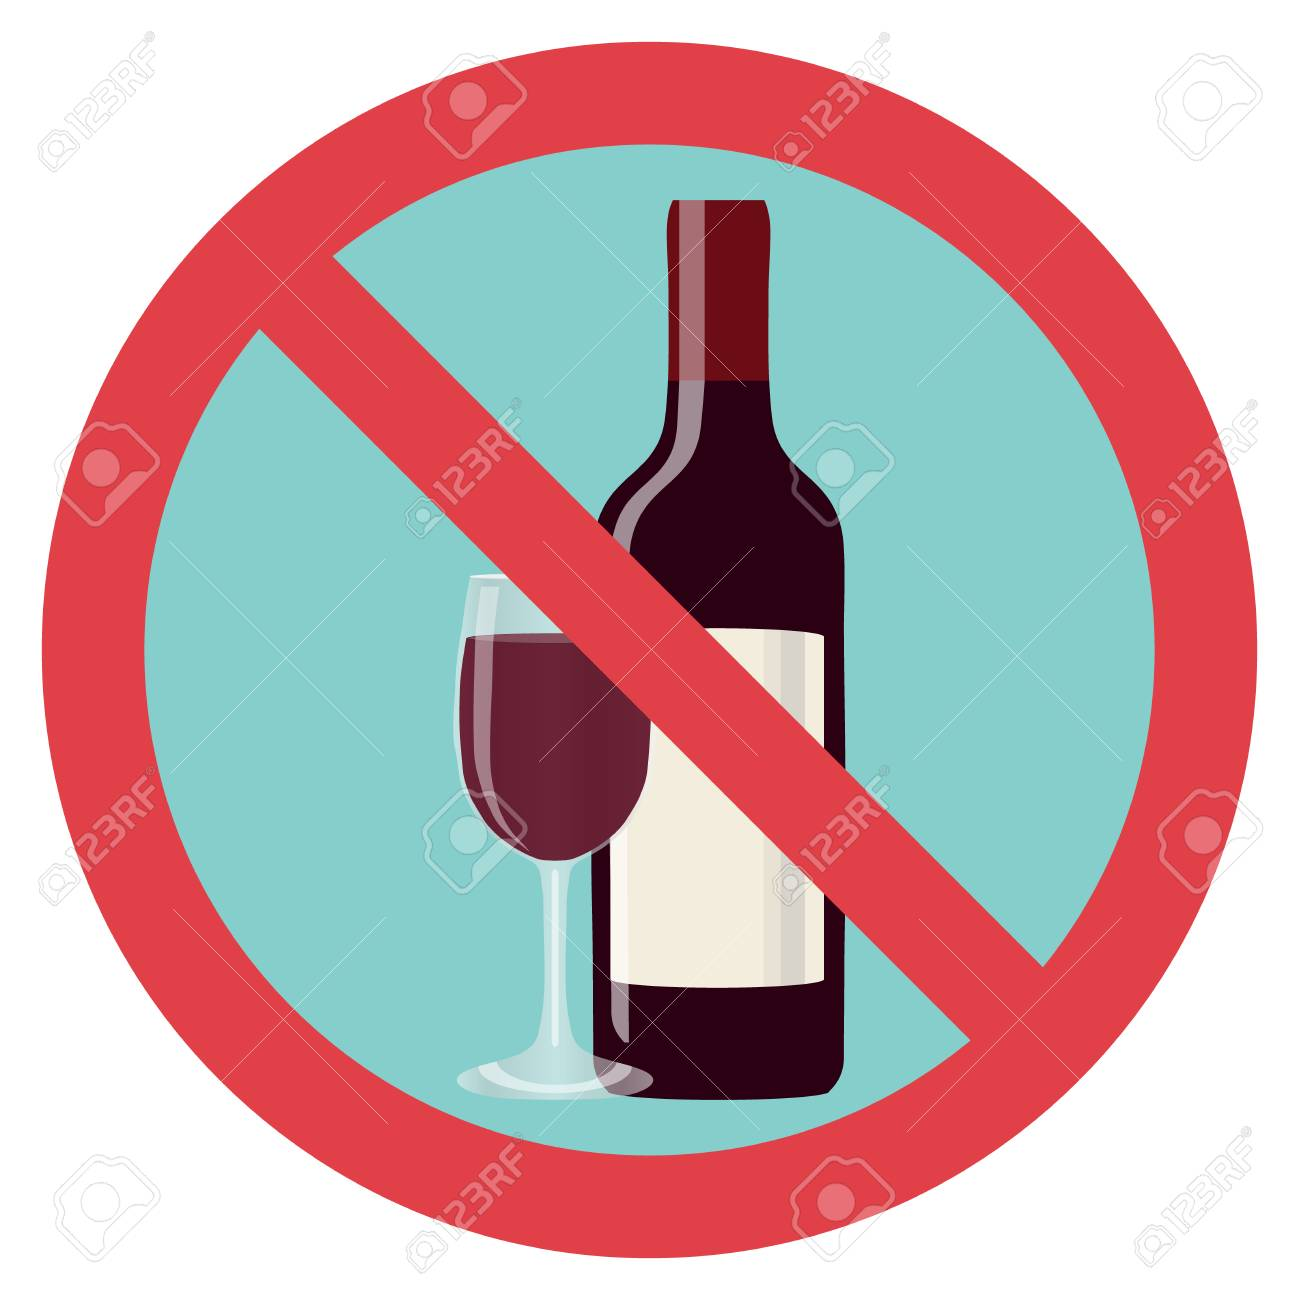 Refusal of alcohol, stop alcohol. A bottle of wine with a glass is crossed out with a red line. Flat design, vector illustration, vector. - 95254063